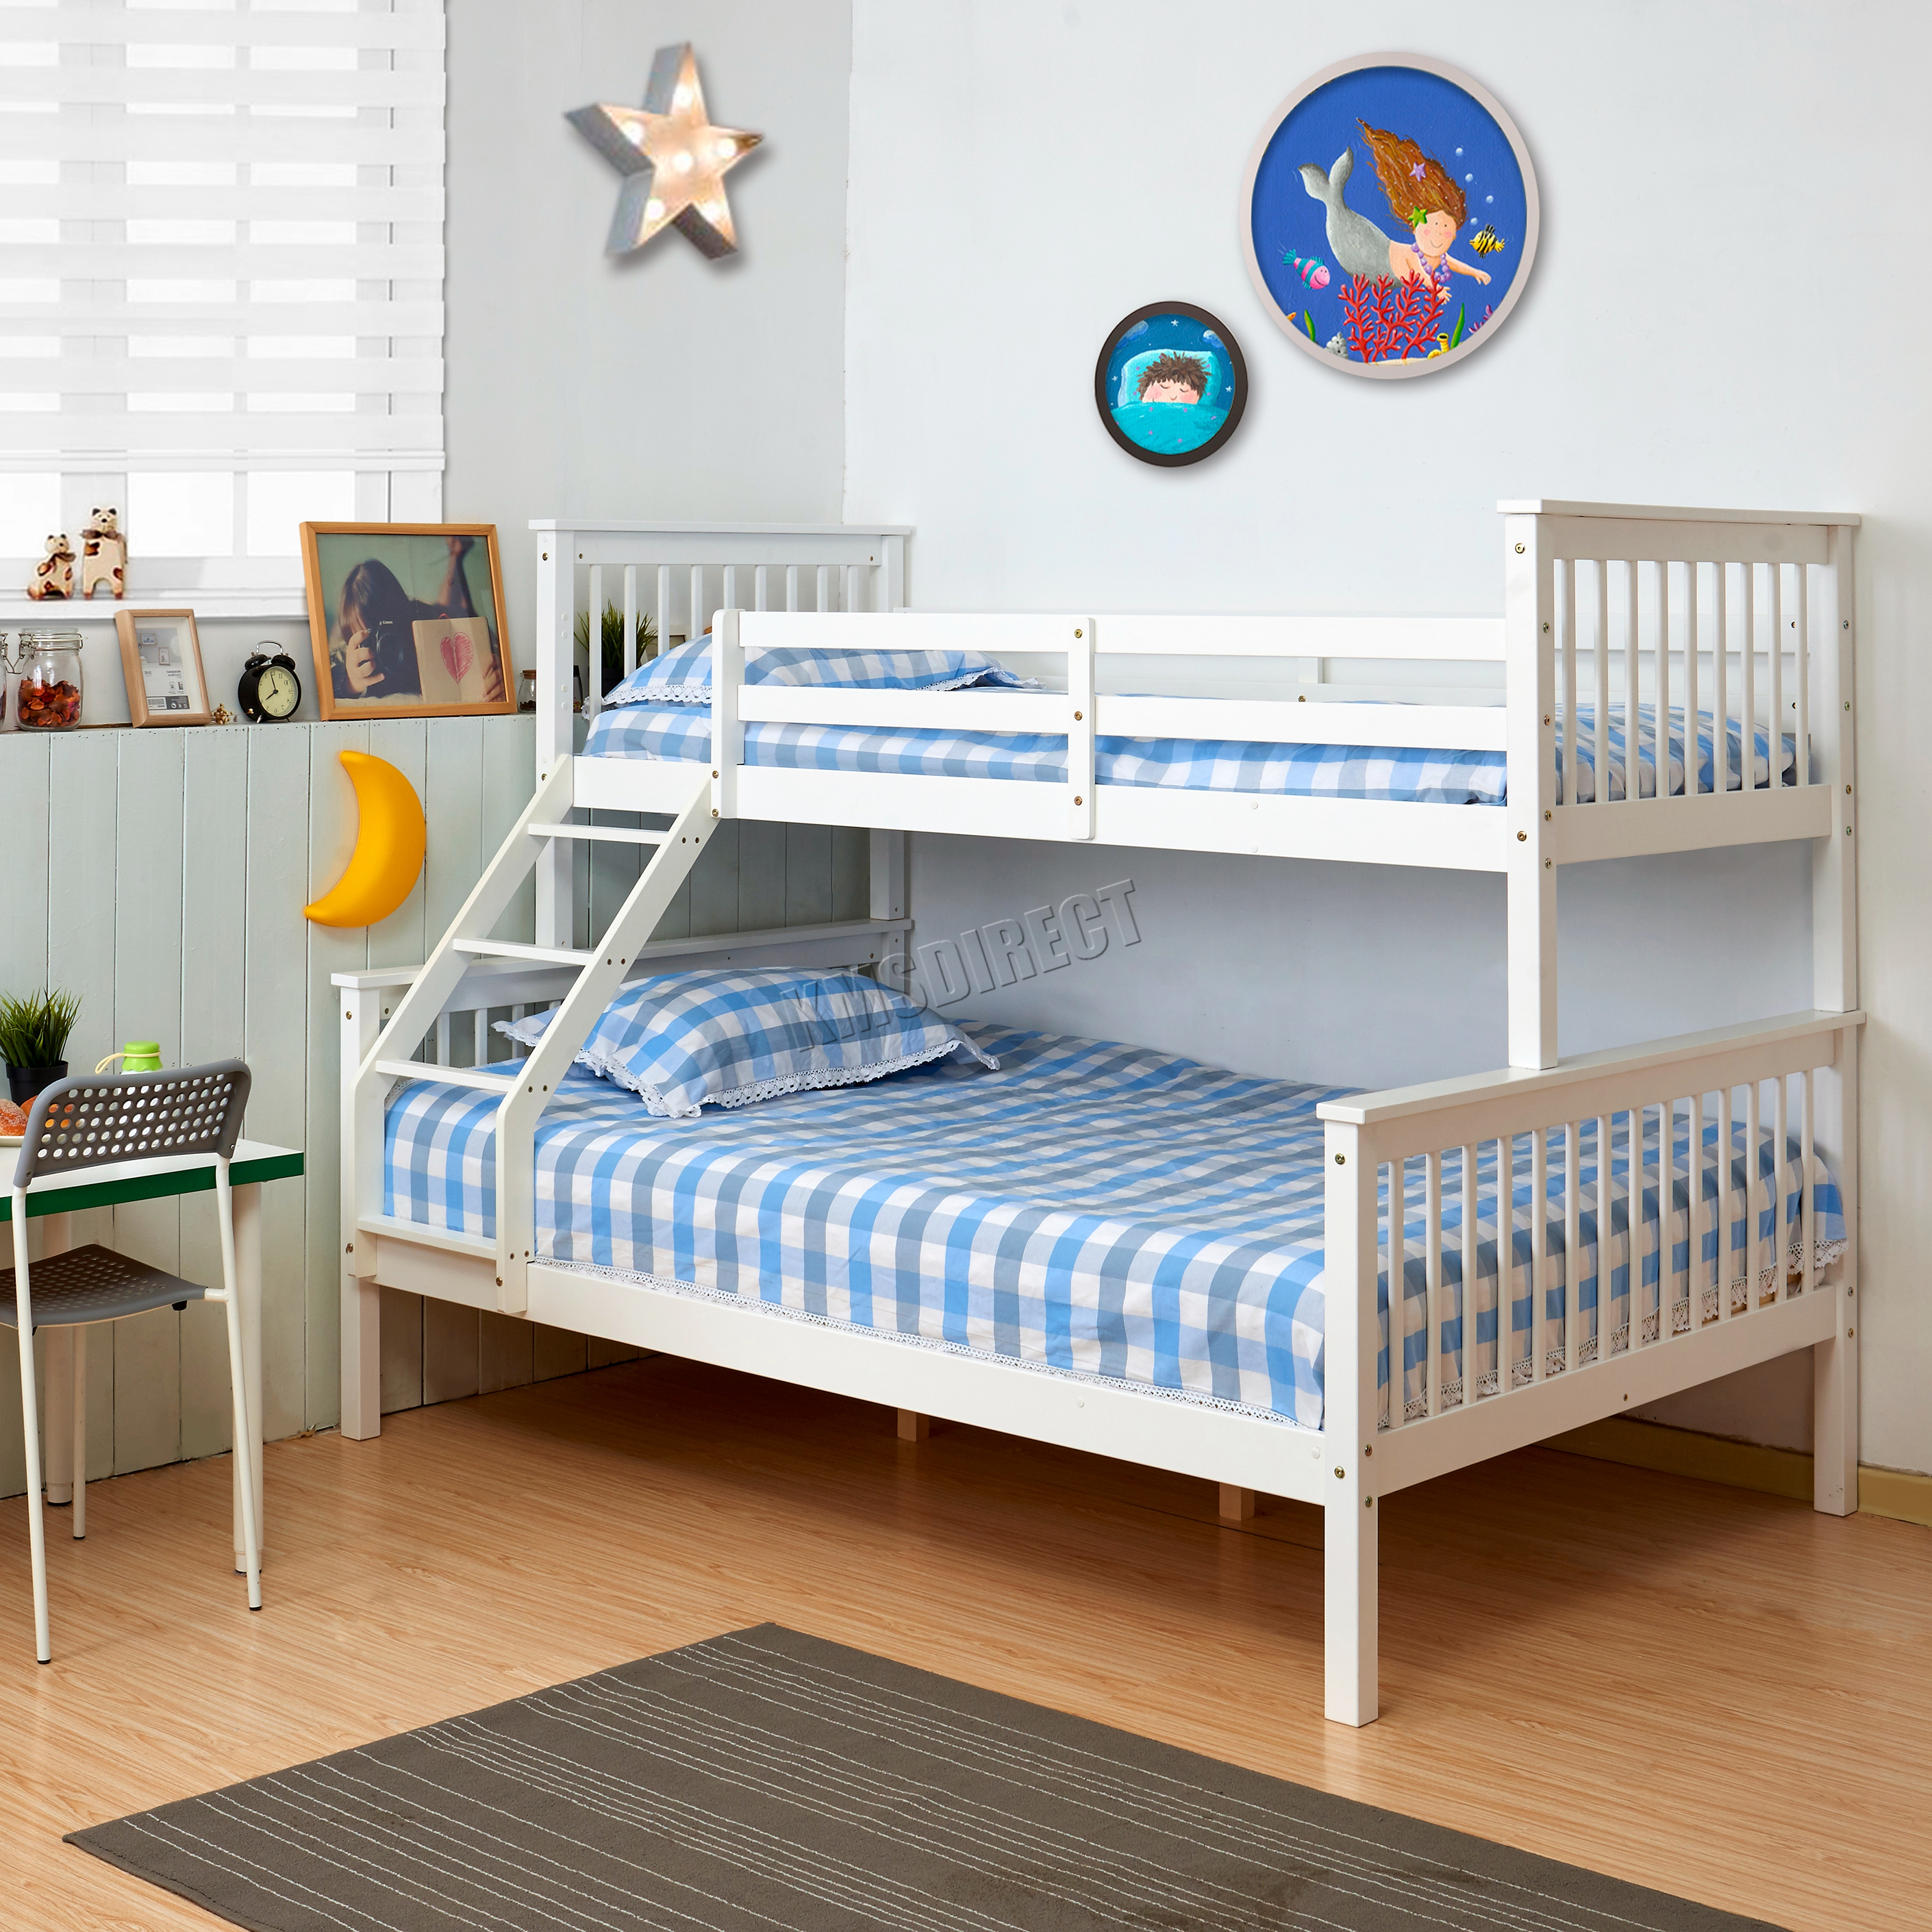 White Wooden Bunk Beds Foxhunter Bunk Bed Wooden Frame Children Kids Triple